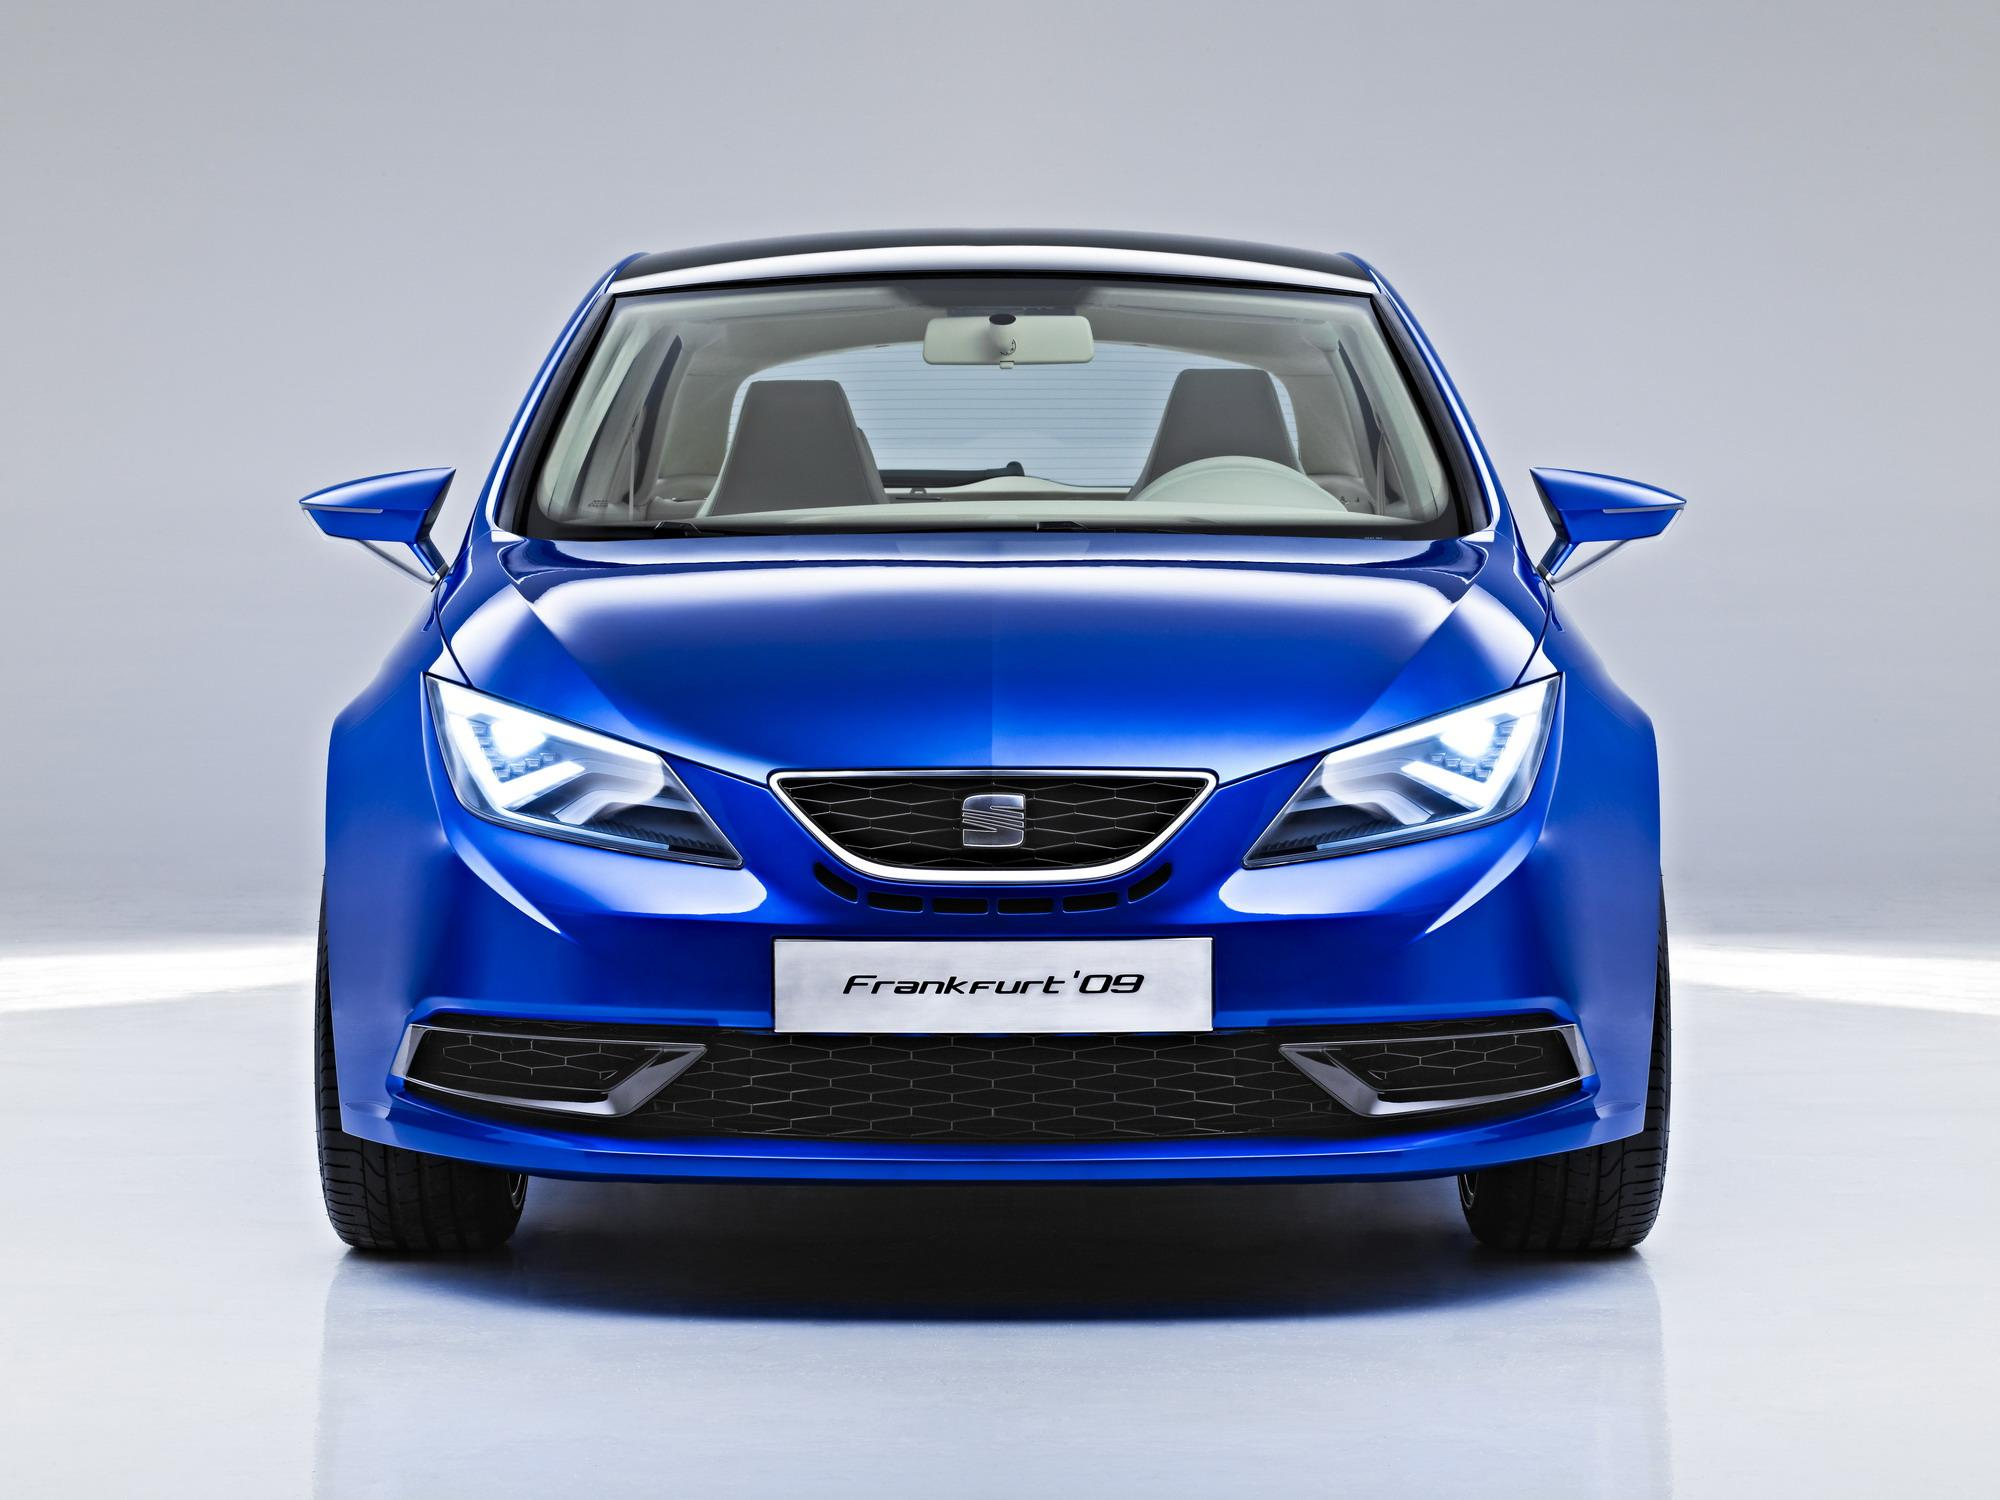 2010 Seat Ibiza Concept Ibz Top Speed